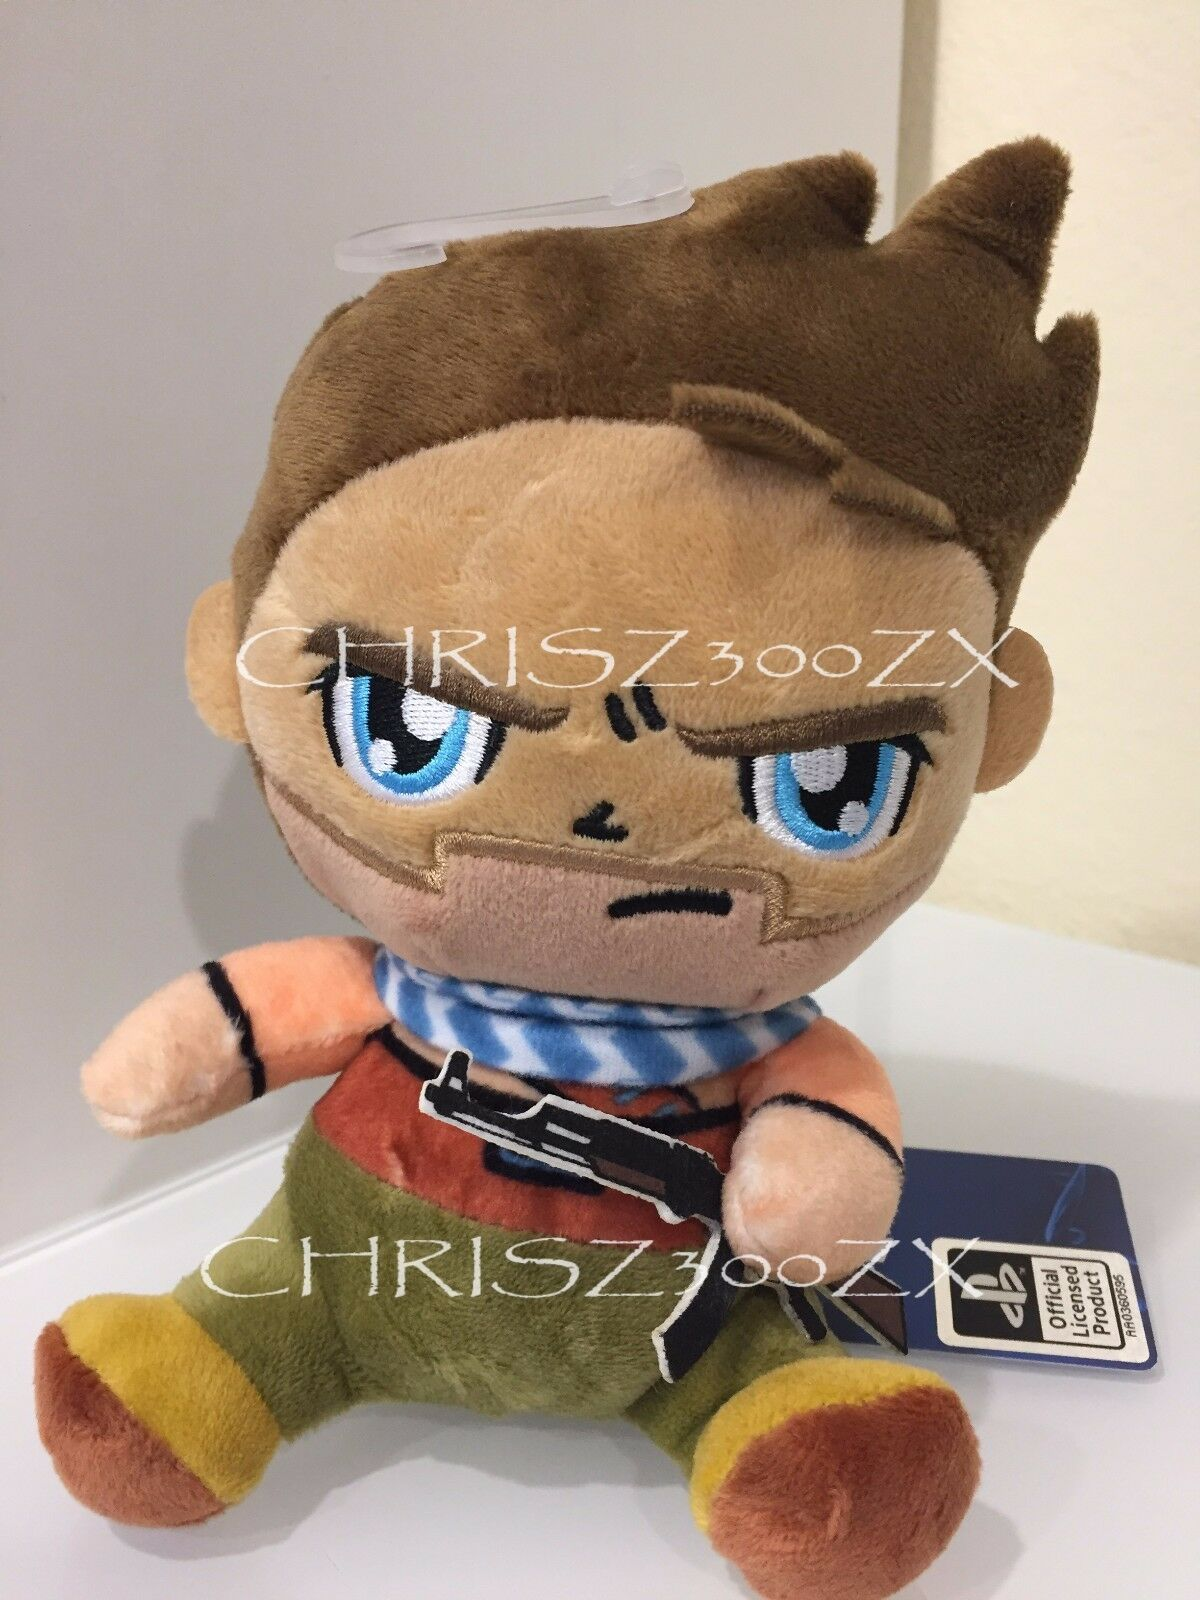 Uncharted Nathan Drake EXCLUSIVE Edition Stubbins Plush Doll 6  OFFICIAL - Sony